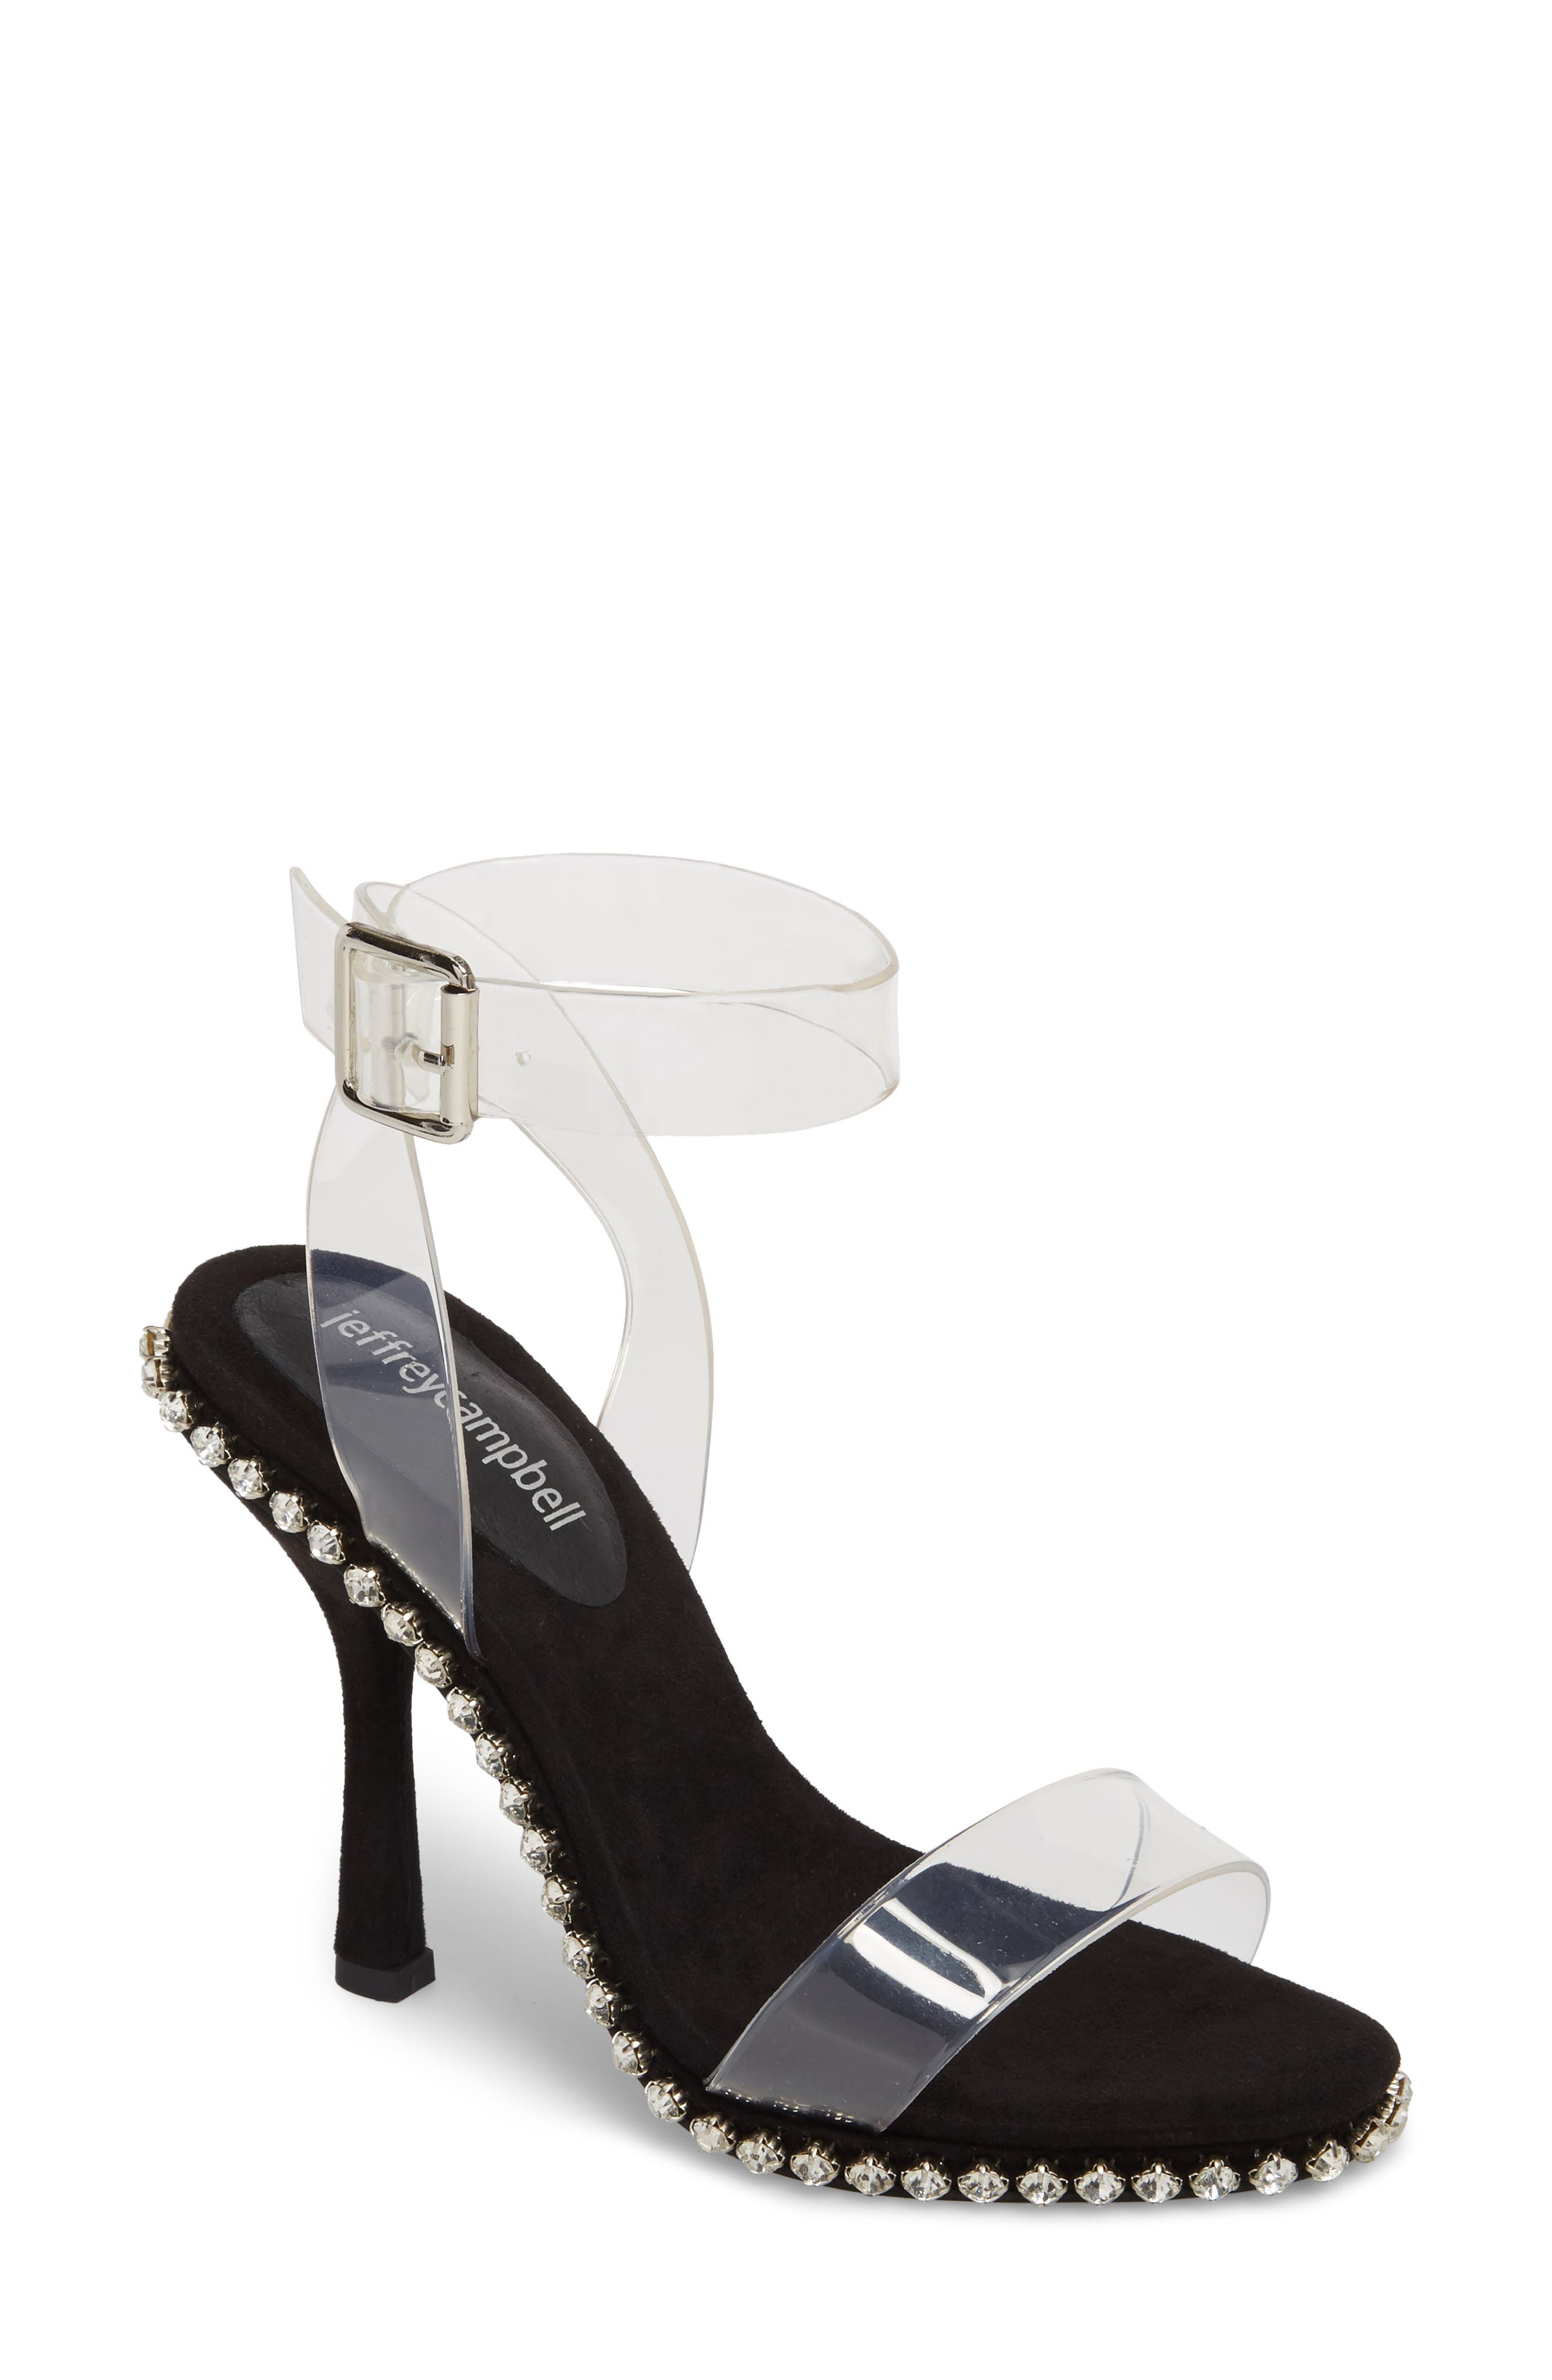 Charmed Sandal,                             Main thumbnail 1, color,                             Black Suede-Clear